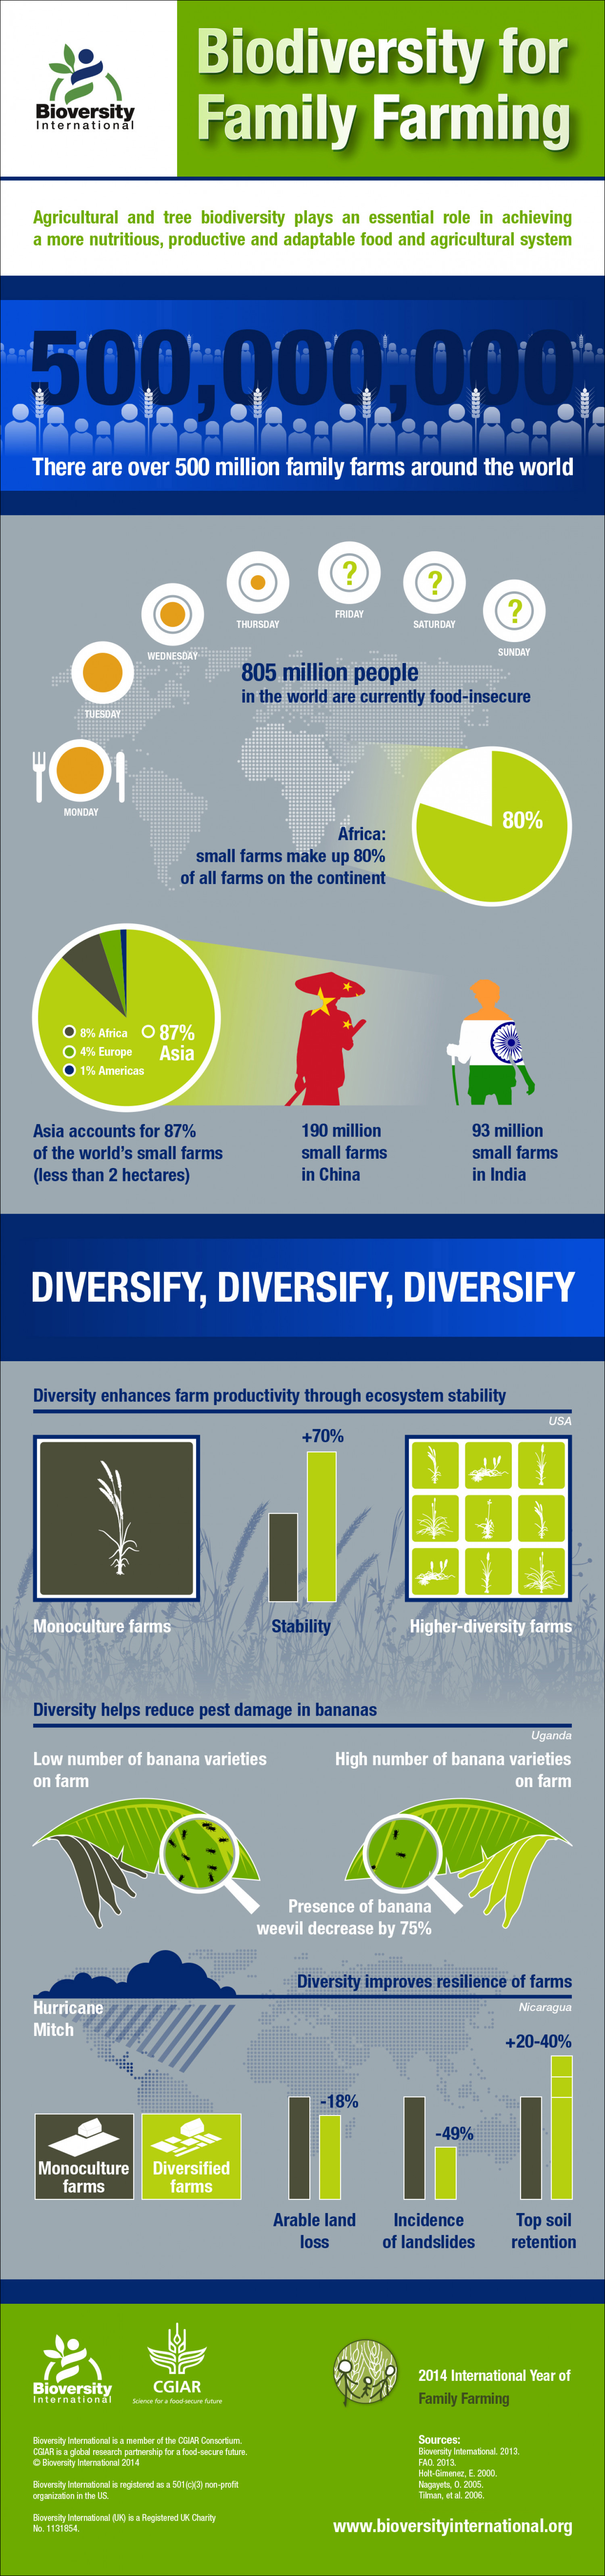 Agricultural biodiversity is key for resilient family farms Infographic